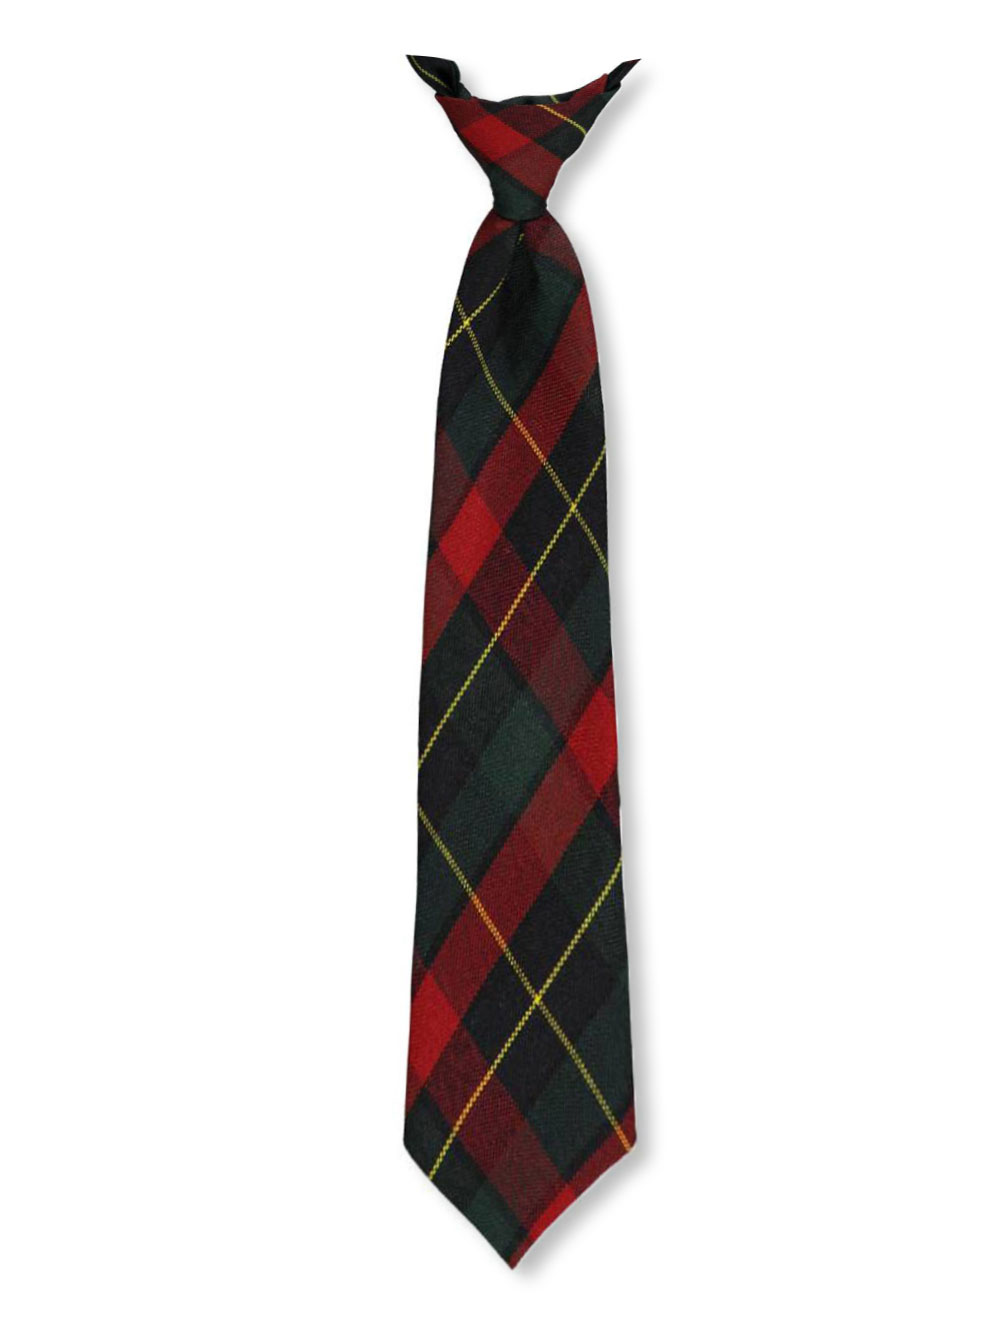 Image of Cookies Brand Adjustable Banded Necktie with Clip  greenredgold plaid 66 12